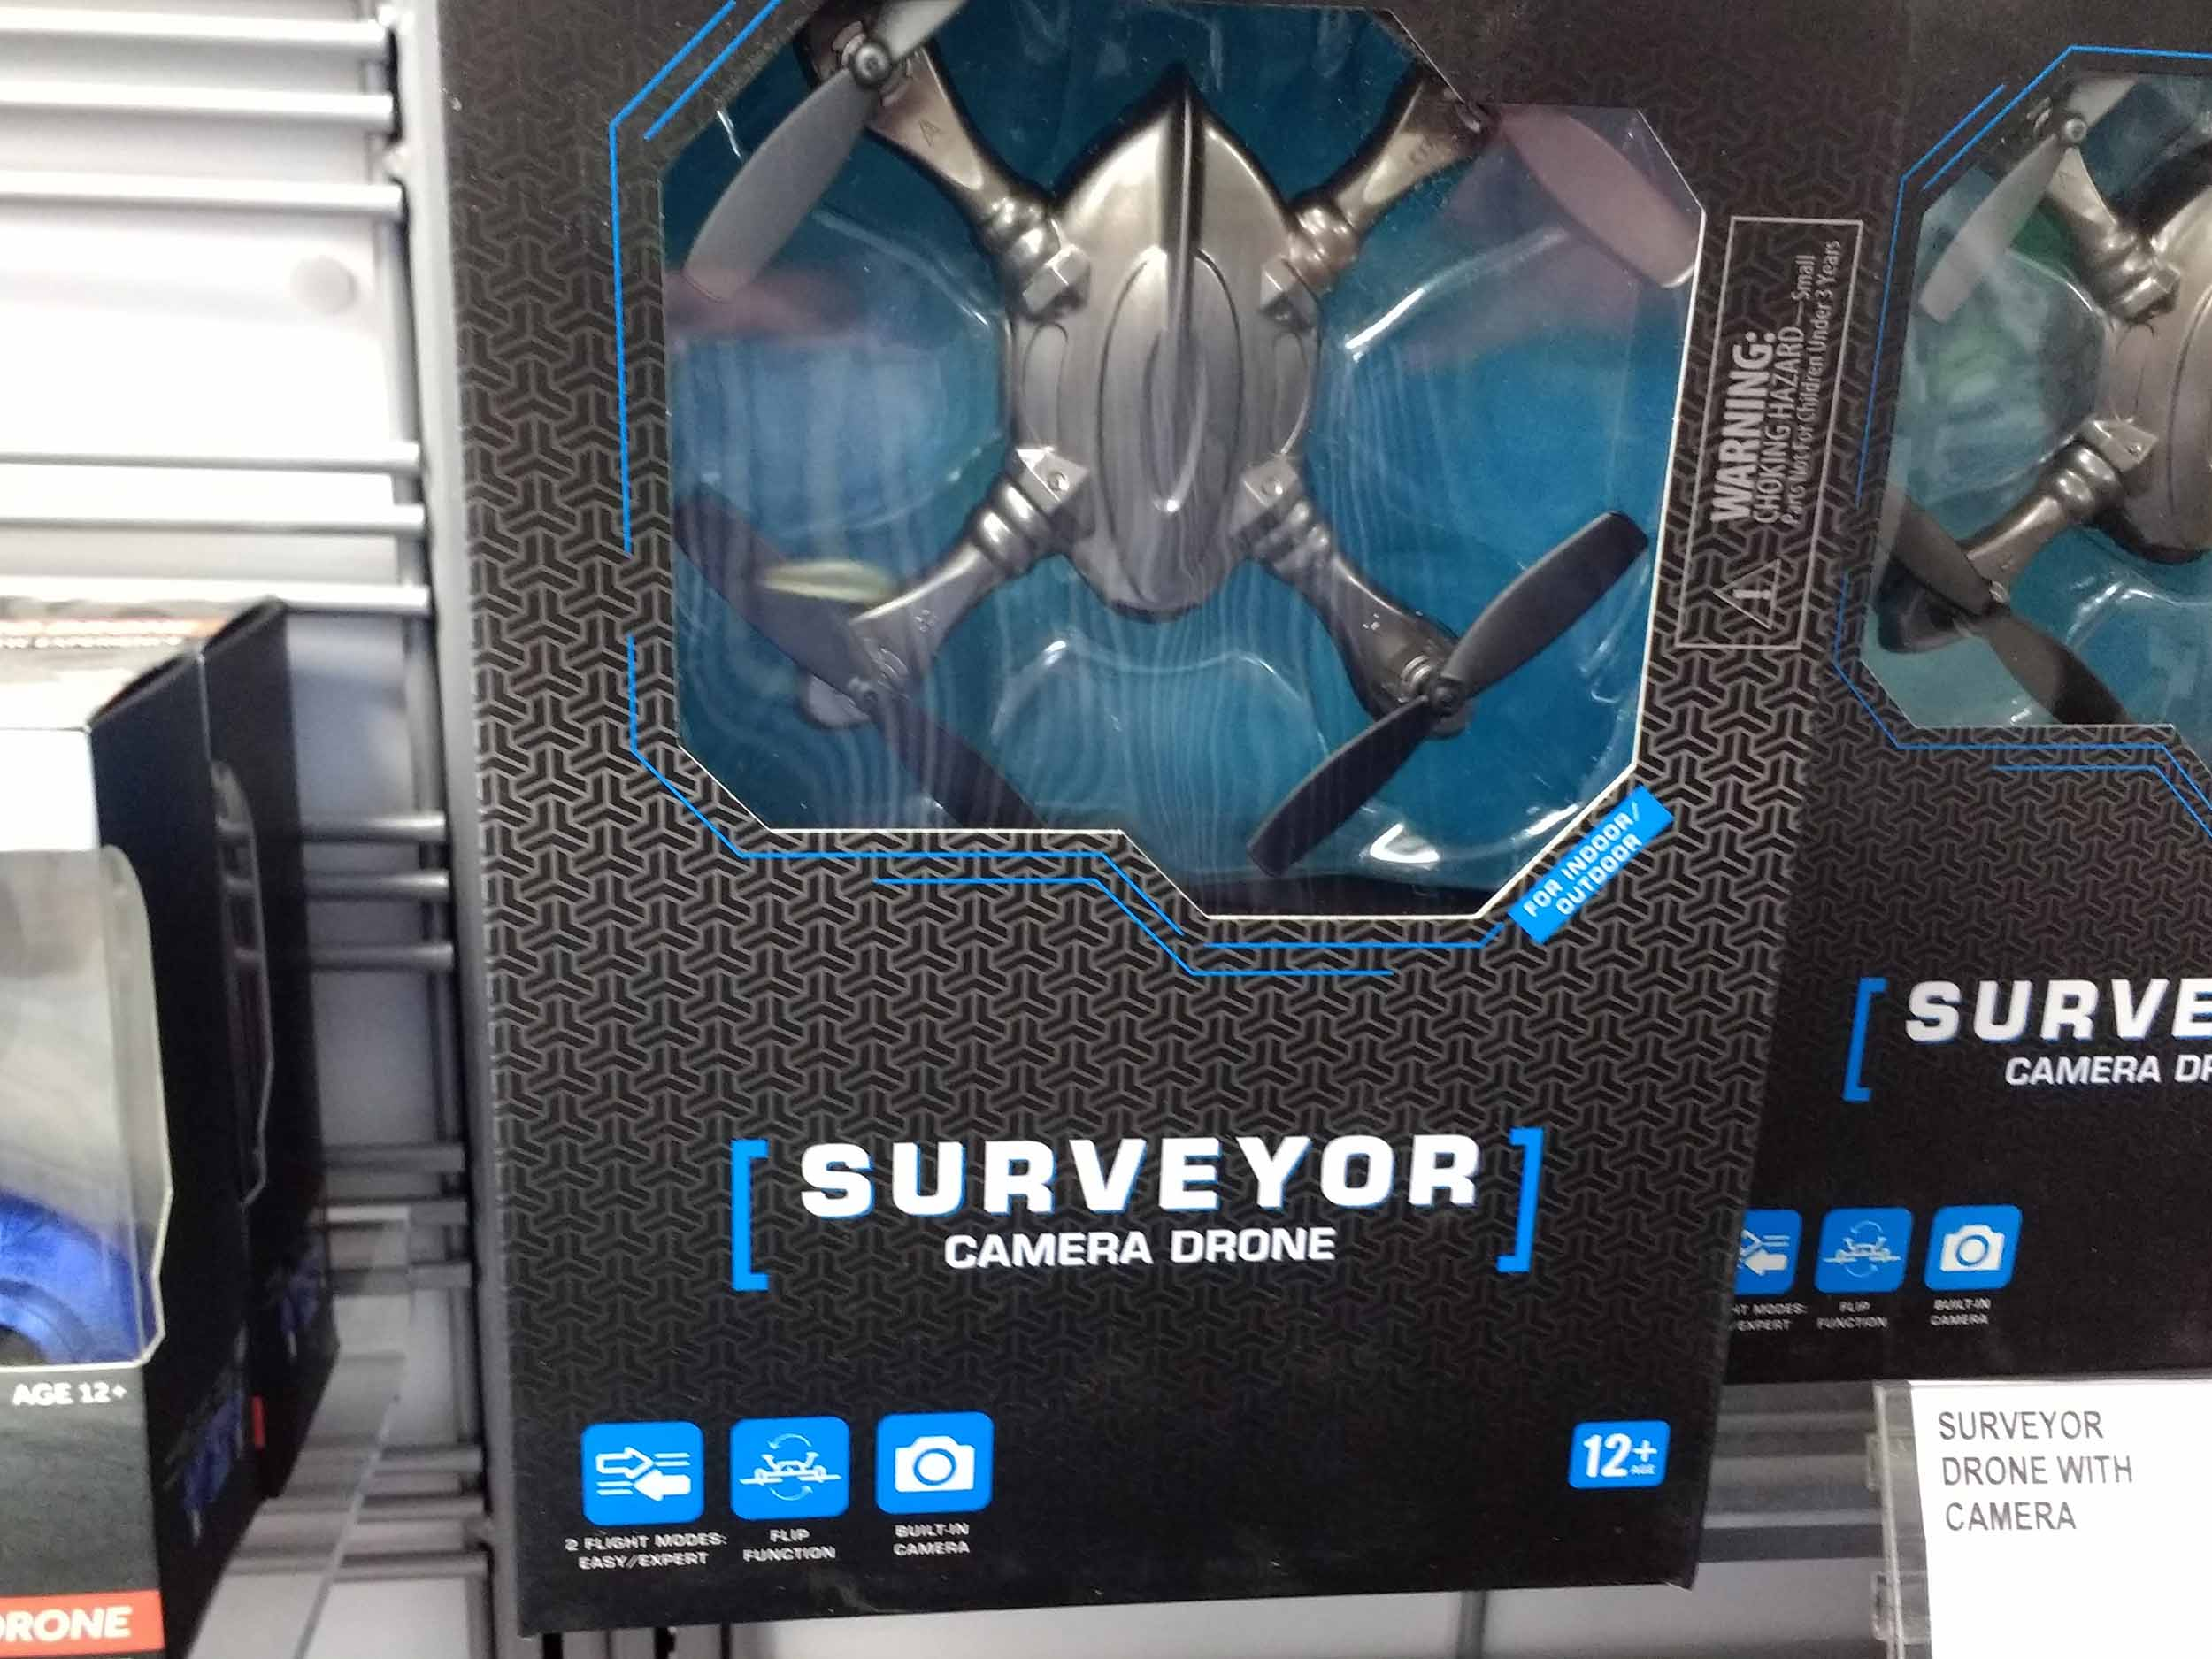 Surveyor camera drone couples flight with photo and video options.